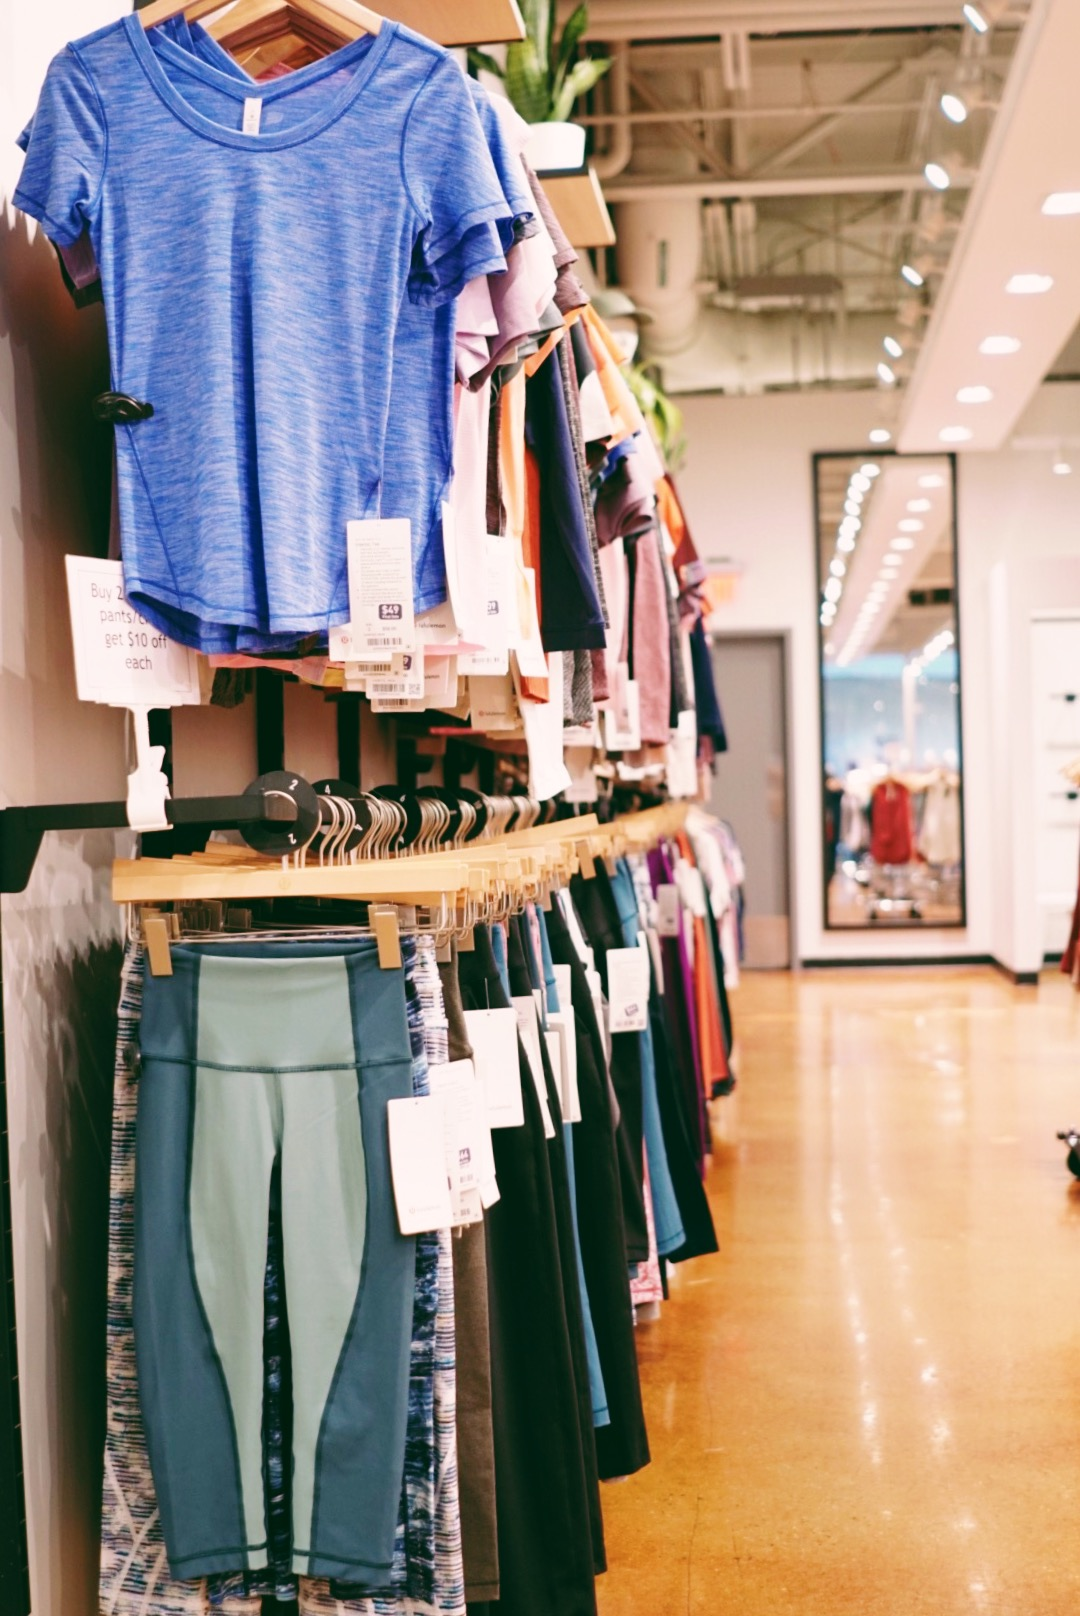 just a reminder: - The Mills are Jersey Gardens is THE destination in new jersey to find the latest on-trend fitness must-haves, whatever your budget, thanks to great outlet stores like Lululemon Athletica.it's also important to note that there is also an entire men's and child section and so many accessorizes!